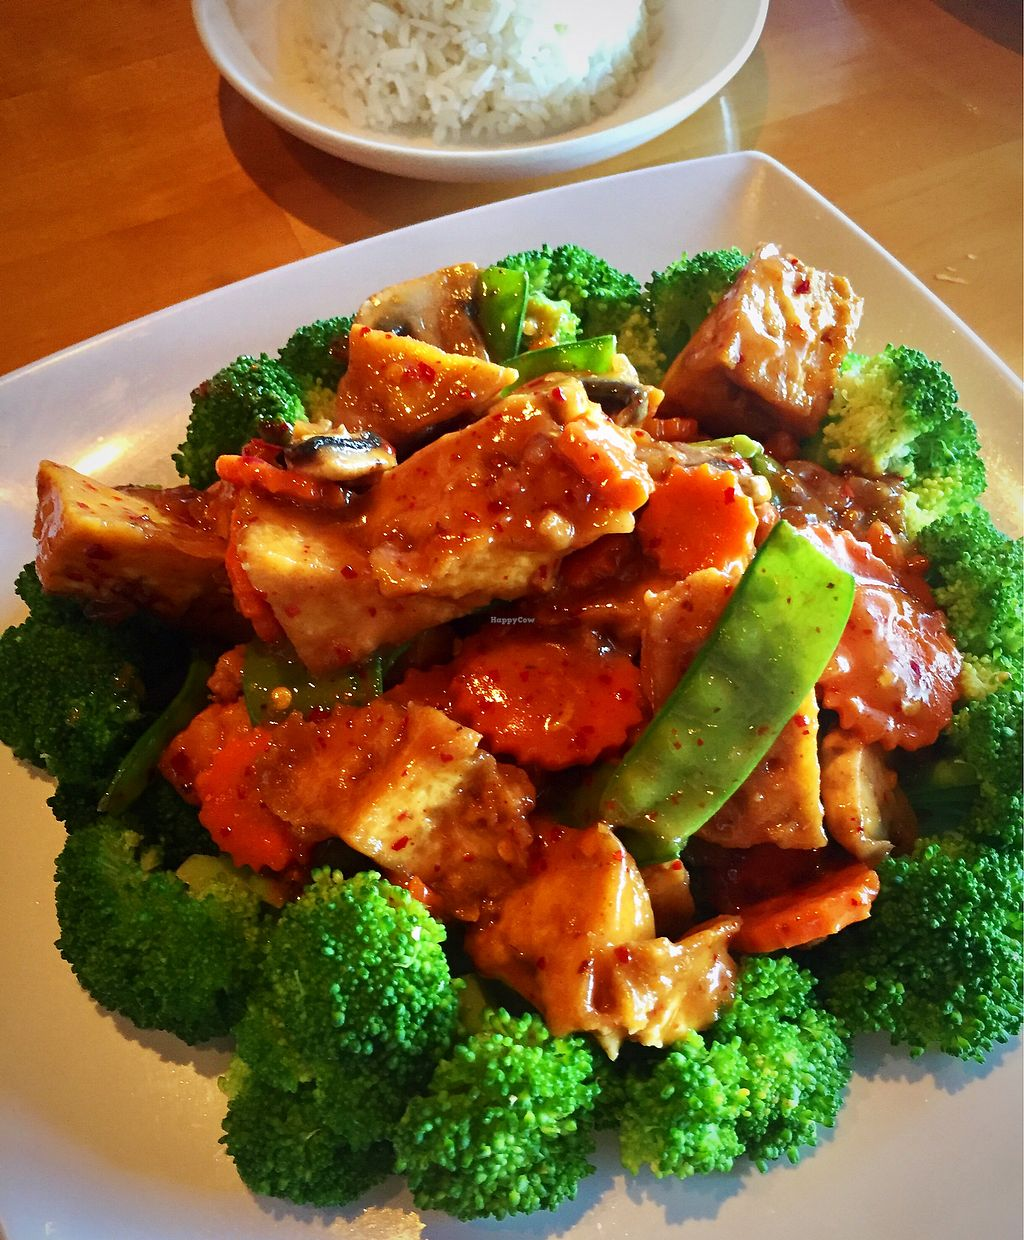 "Photo of Chon Thai Food  by <a href=""/members/profile/Squirrellypup"">Squirrellypup</a> <br/>Chon Thai Rama with Tofu <br/> August 24, 2017  - <a href='/contact/abuse/image/99048/296858'>Report</a>"